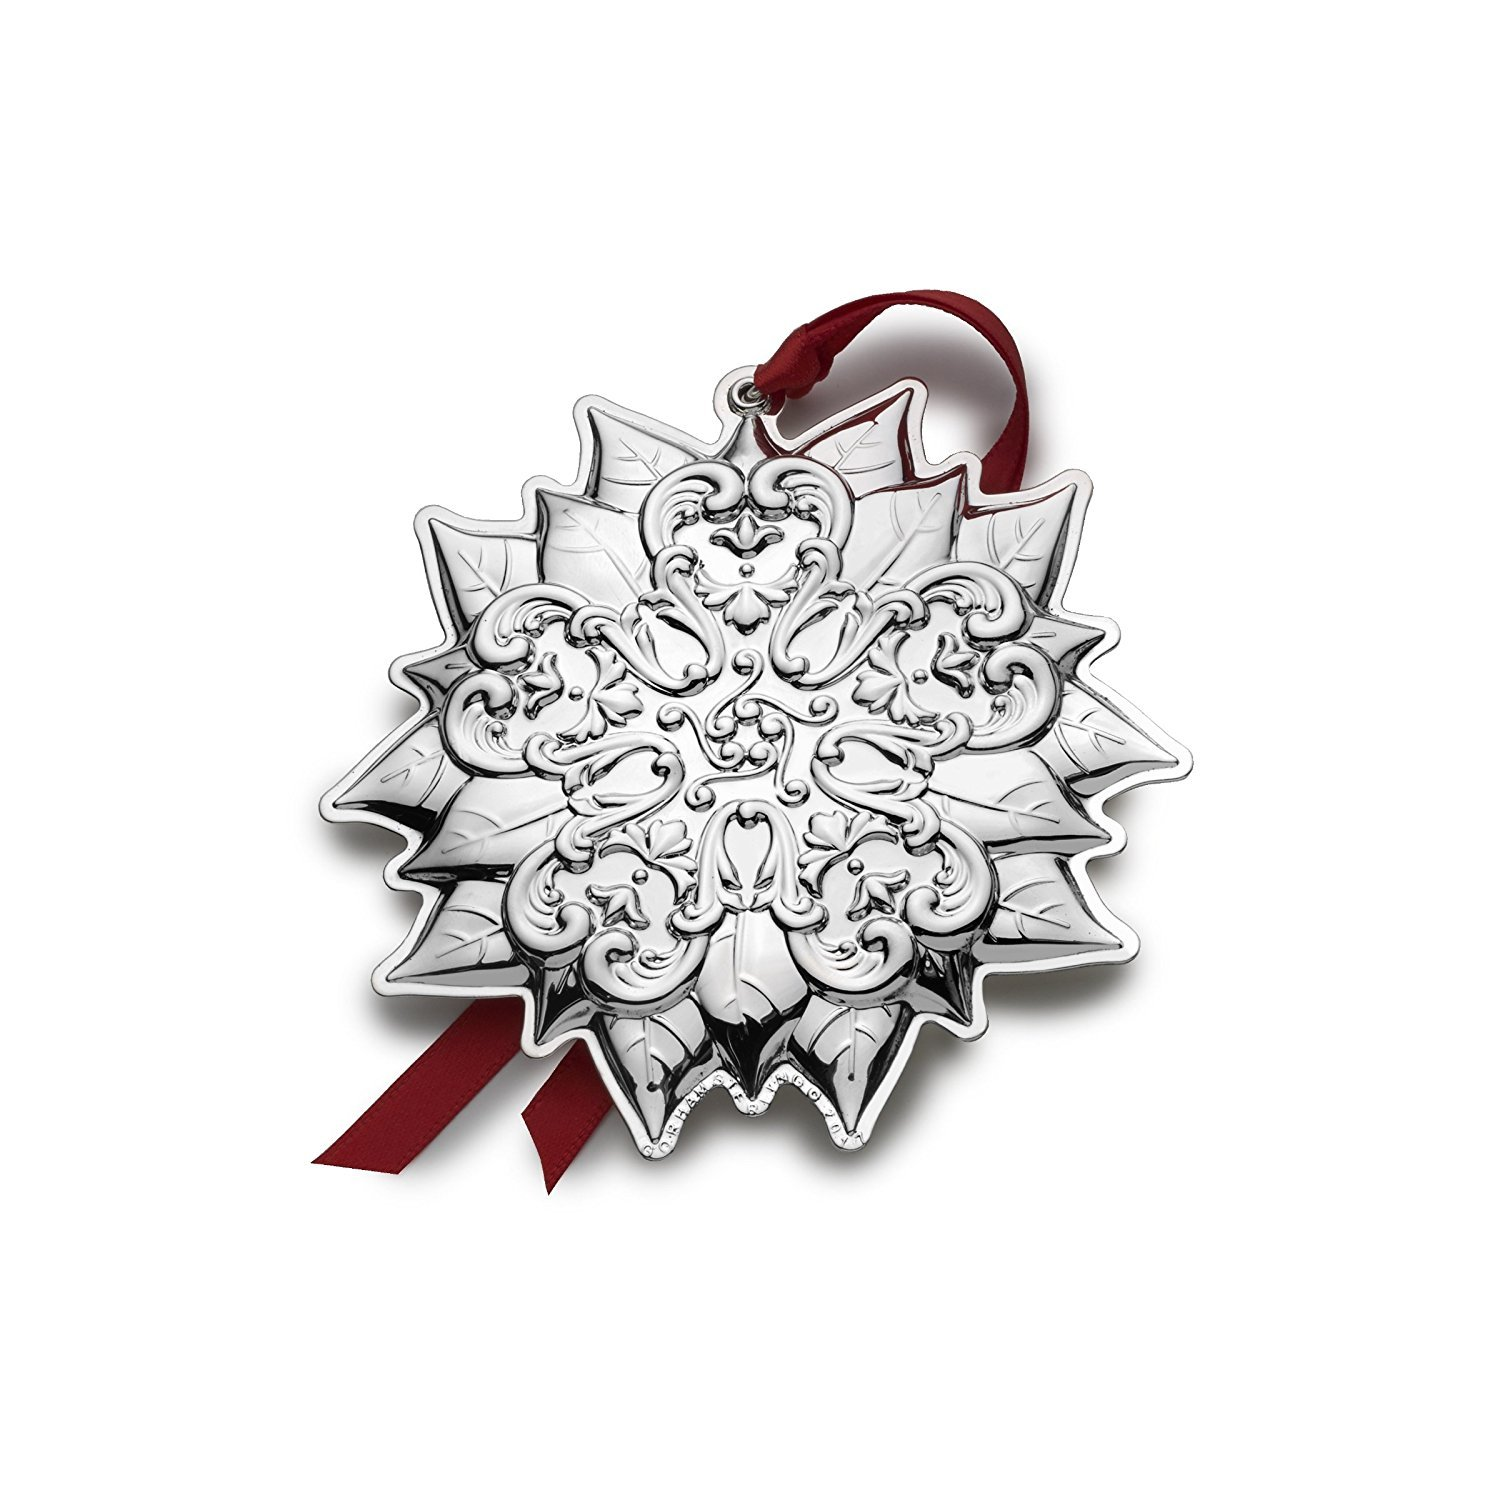 Gorham 2017 Gorham Chantilly Ornament (Poinsettia) - 10th Anniversary Edition